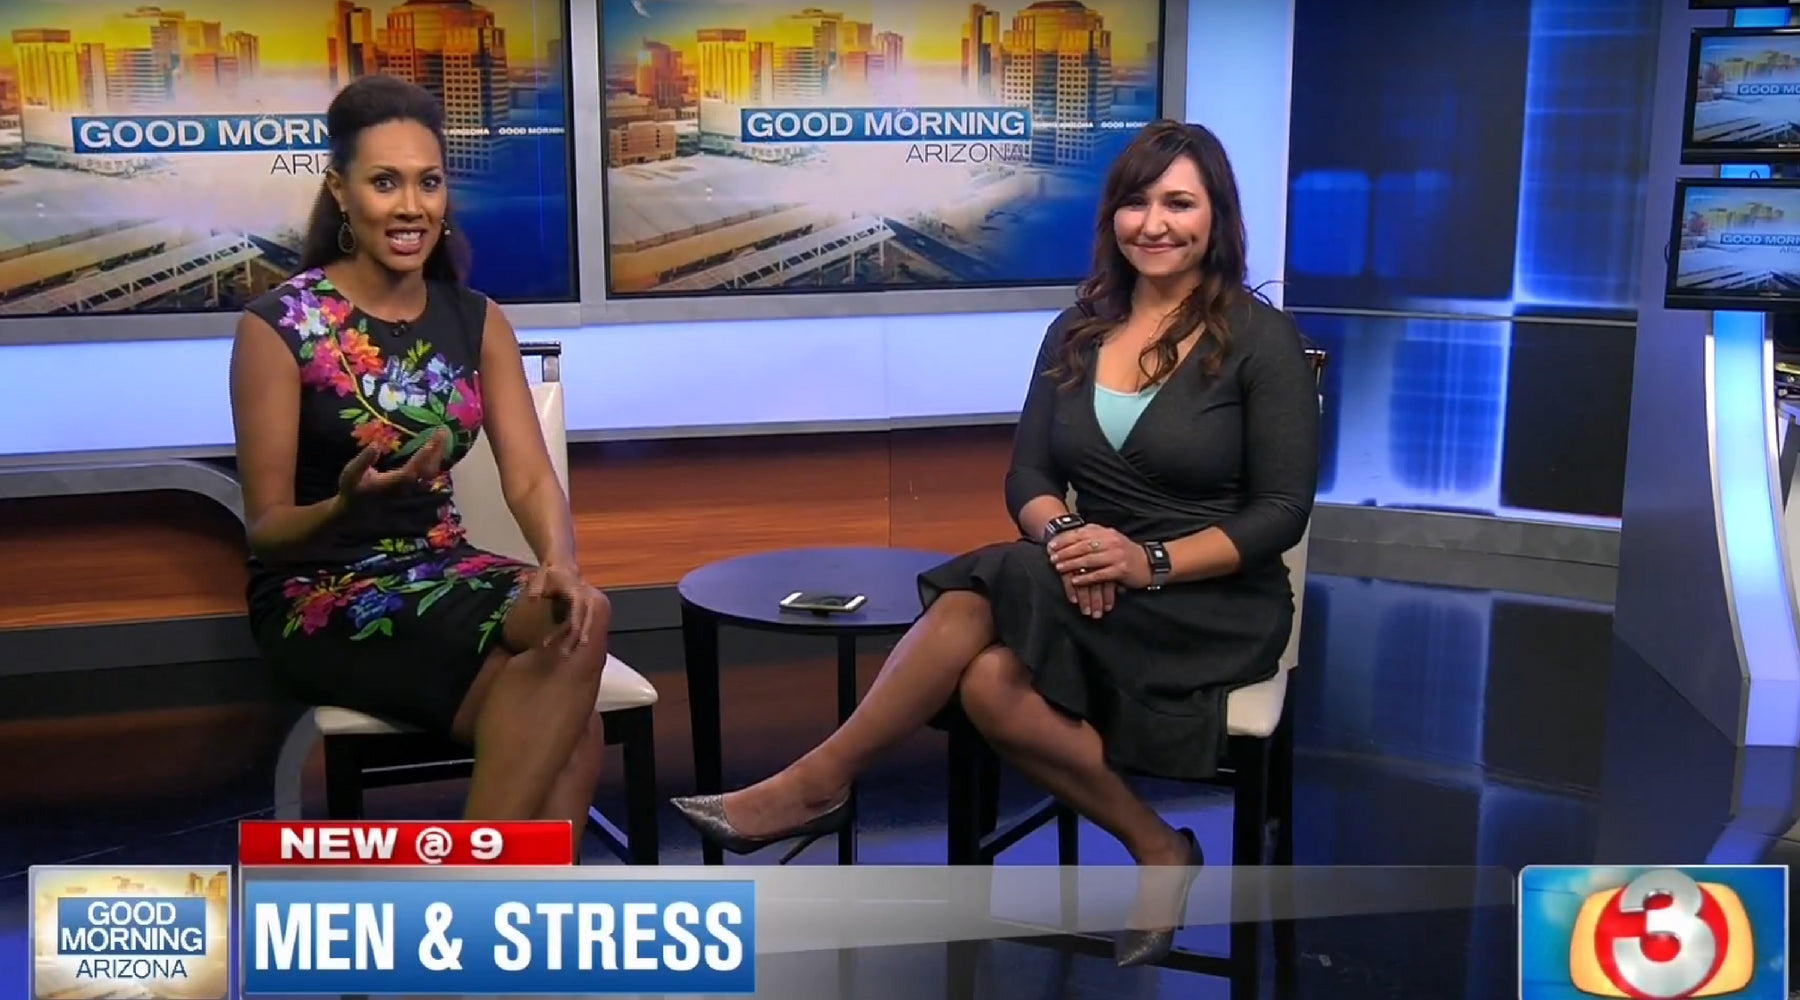 3TV Good Morning Arizona - Dr. Amy Serin and TouchPoints™ on Good Morning Arizona (3TV): Men & Stress